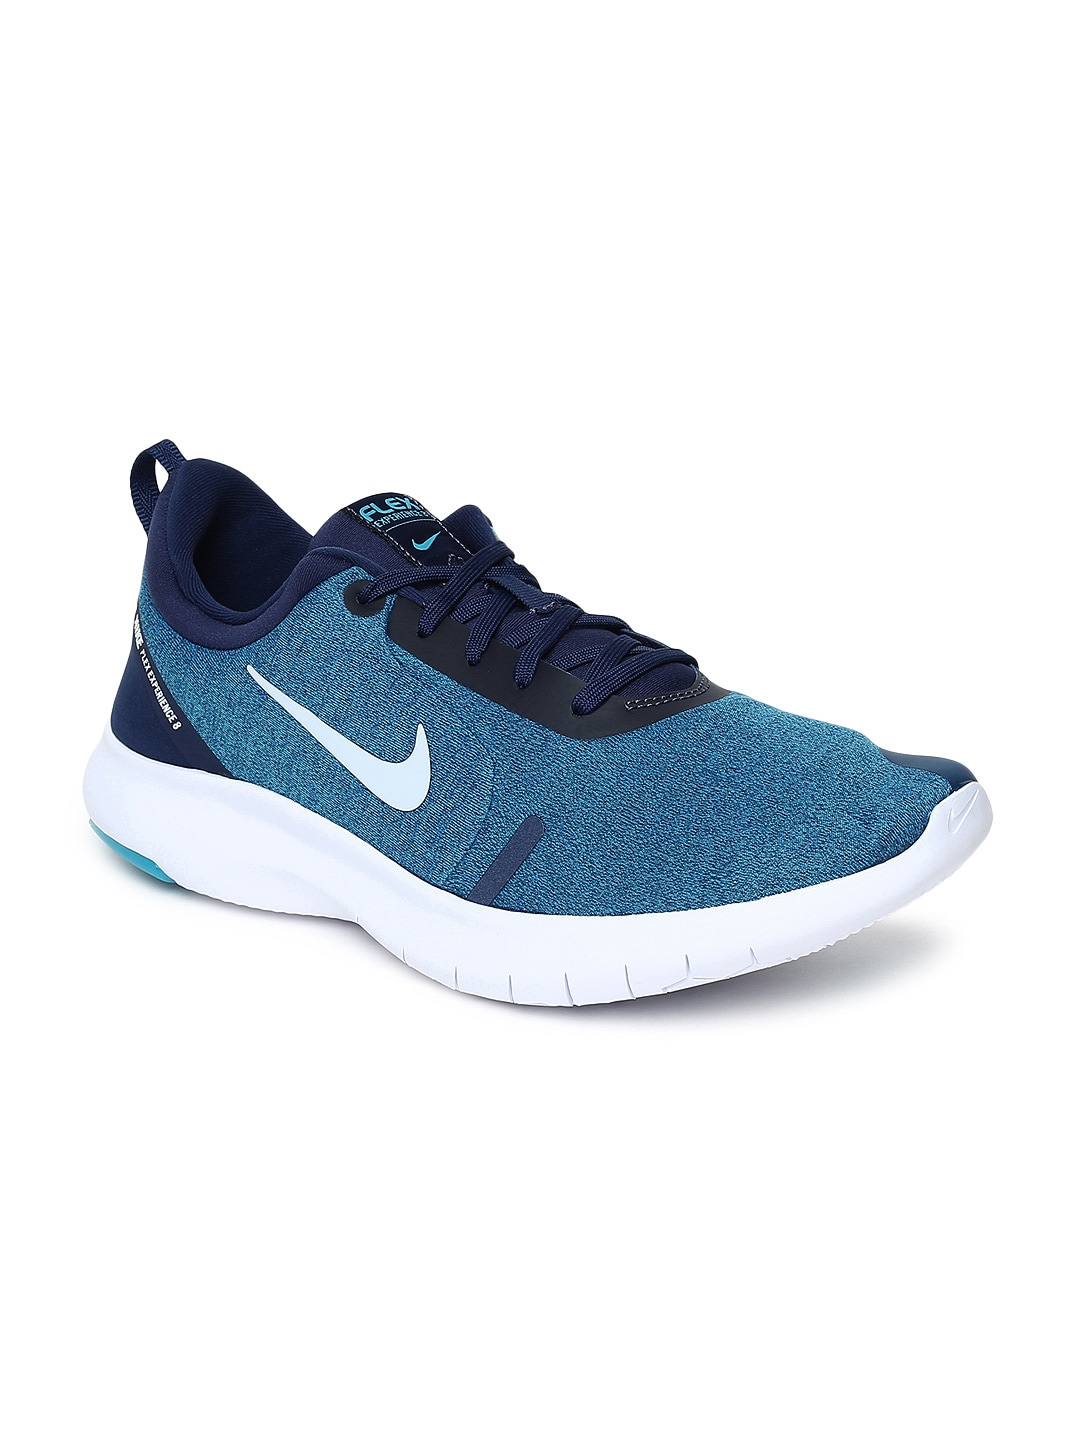 9b5040f19 Nike Running Shoes - Buy Nike Running Shoes Online